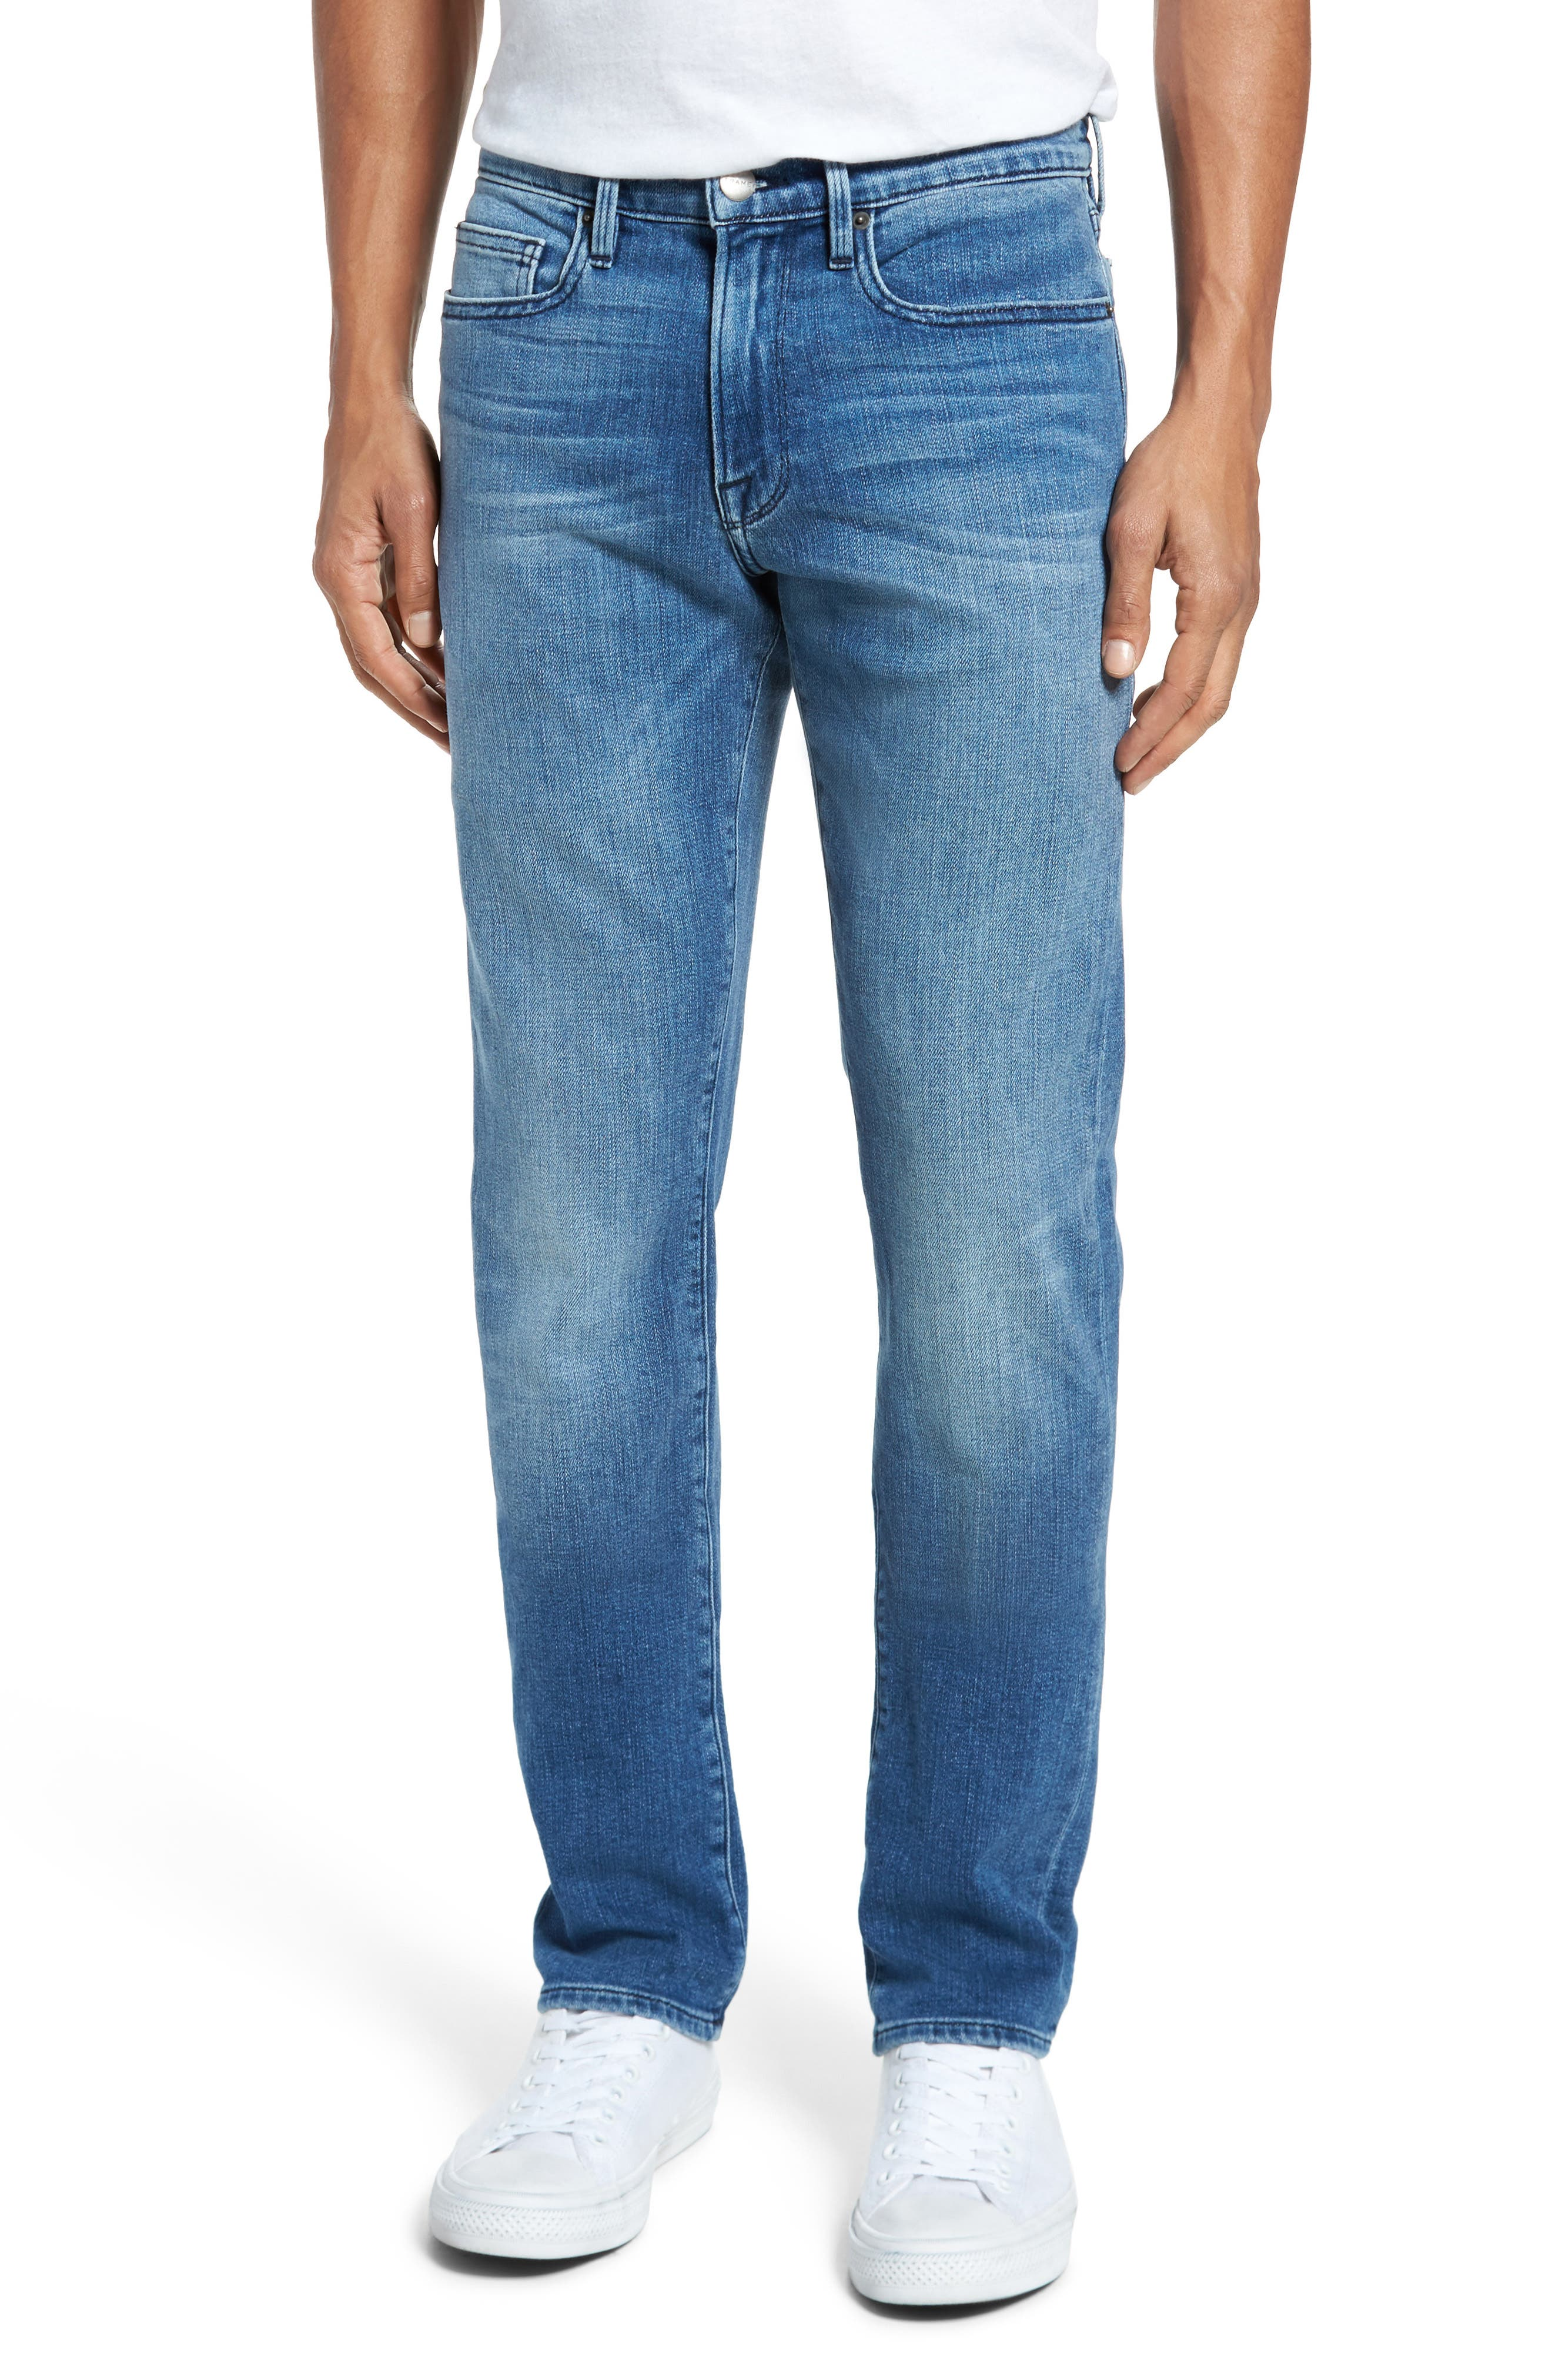 L'Homme Slim Fit Jeans,                         Main,                         color, BRADBURY